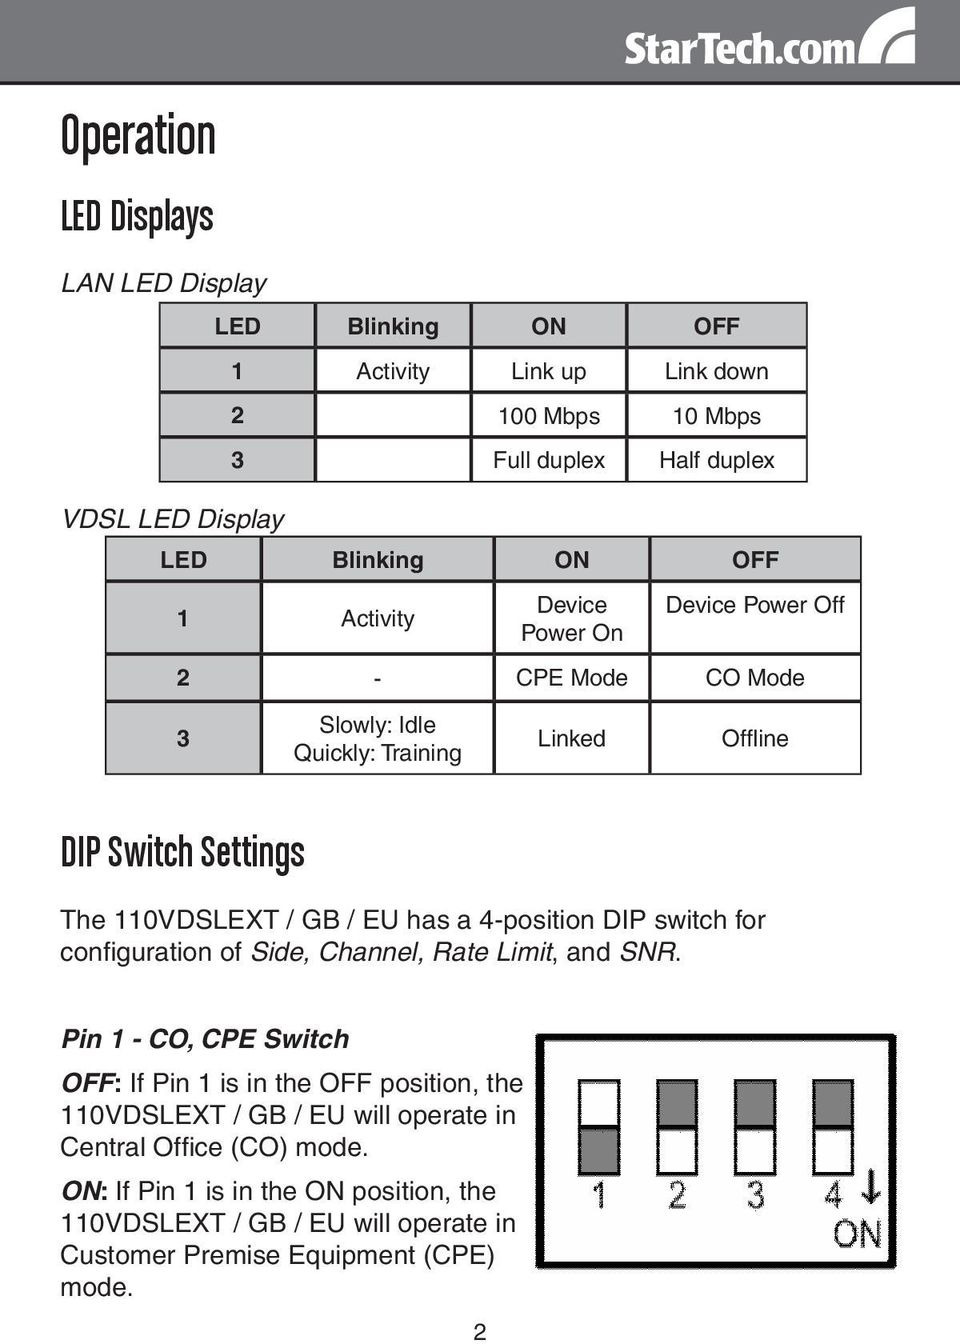 has a 4-position DIP switch for configuration of Side, Channel, Rate Limit, and SNR.